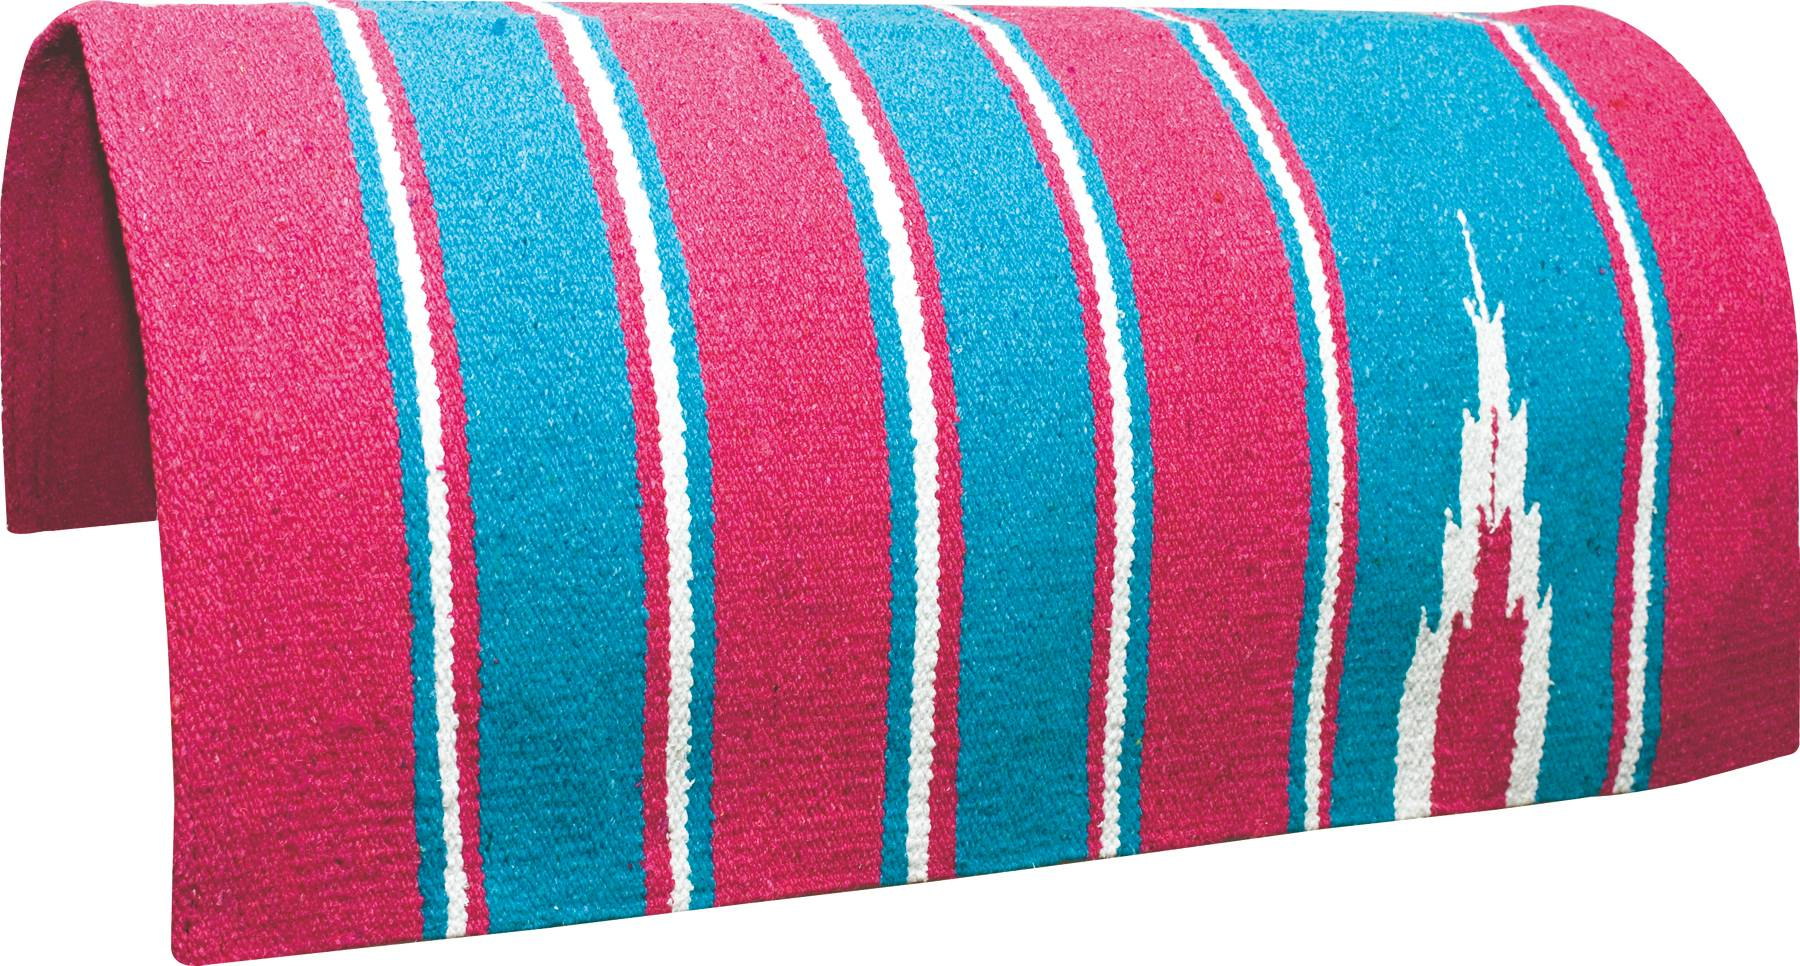 Abetta Bright Cotton Saddle Blanket